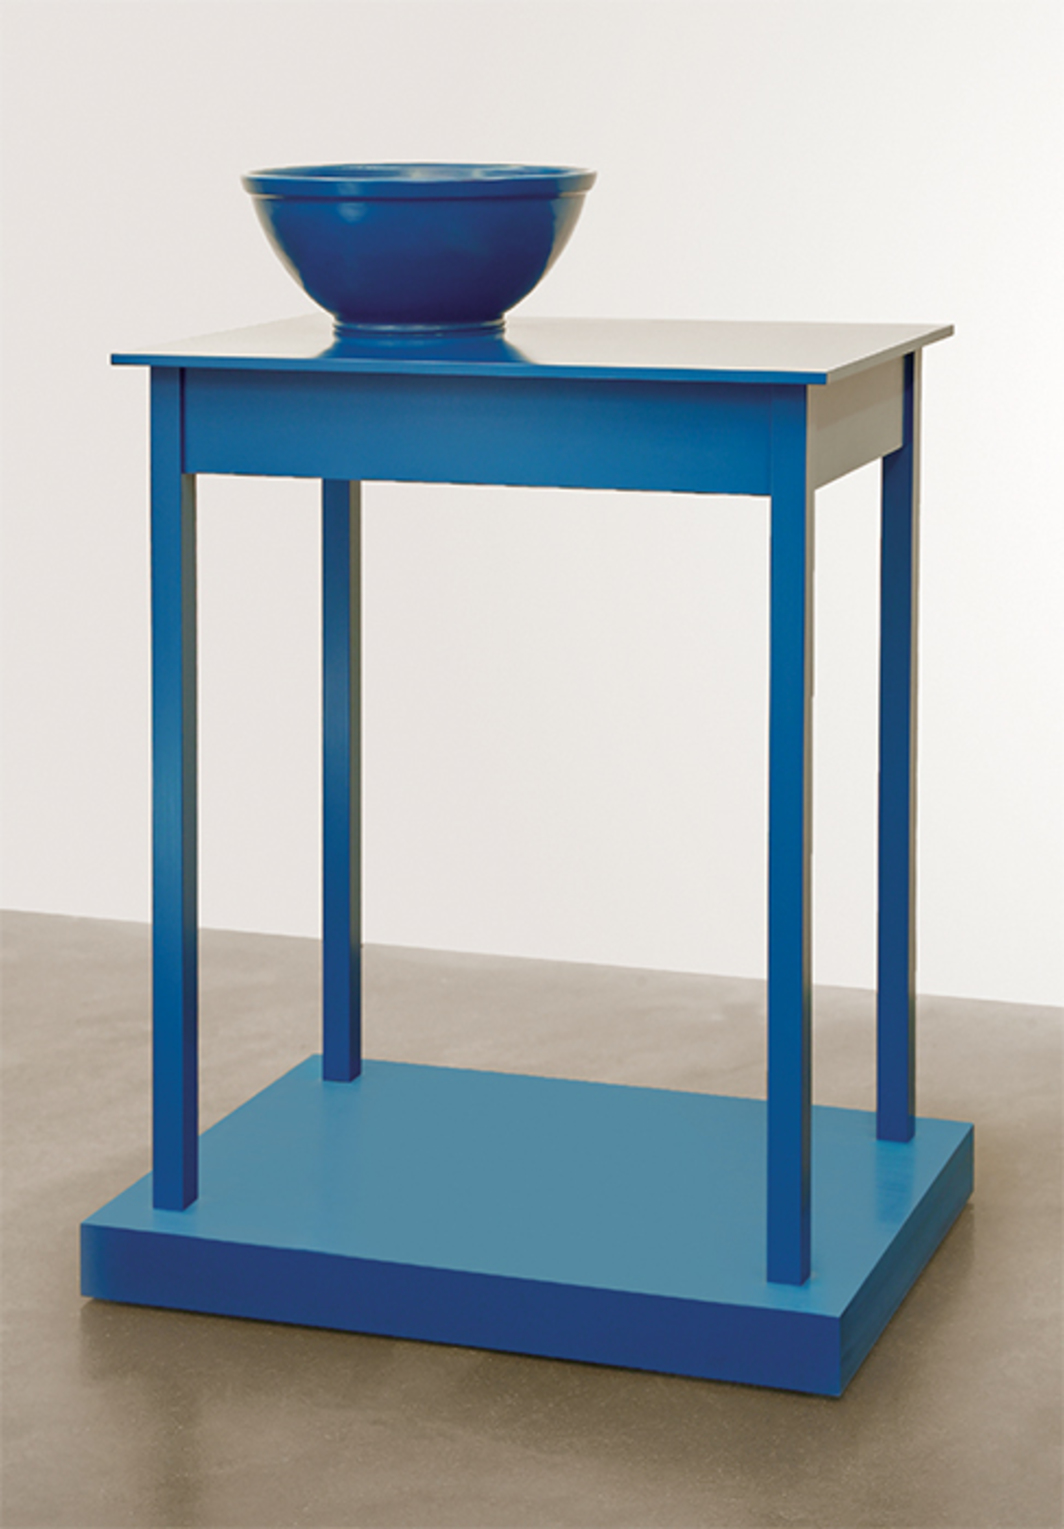 "Roy McMakin, Untitled (a table that looks like a sculpture), 2016, enamel on aluminum, eastern maple, plywood, 44 × 31 3/4 × 21 3/4""."